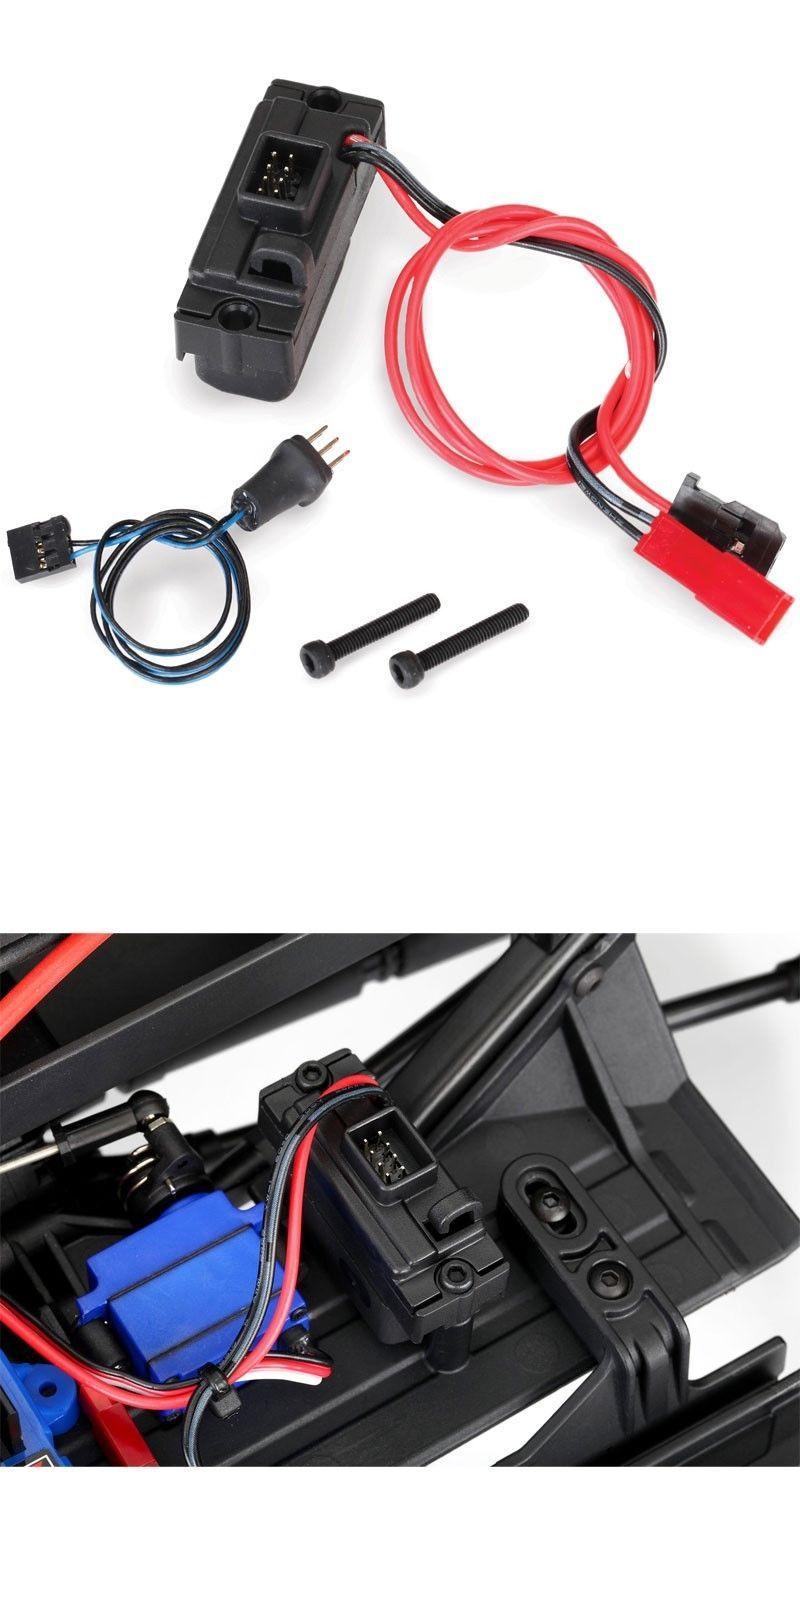 hight resolution of lighting and lamps 182177 traxxas 8028 trx 4 power supply and wiring harness for led lights tra8028 buy it now only 19 95 on ebay